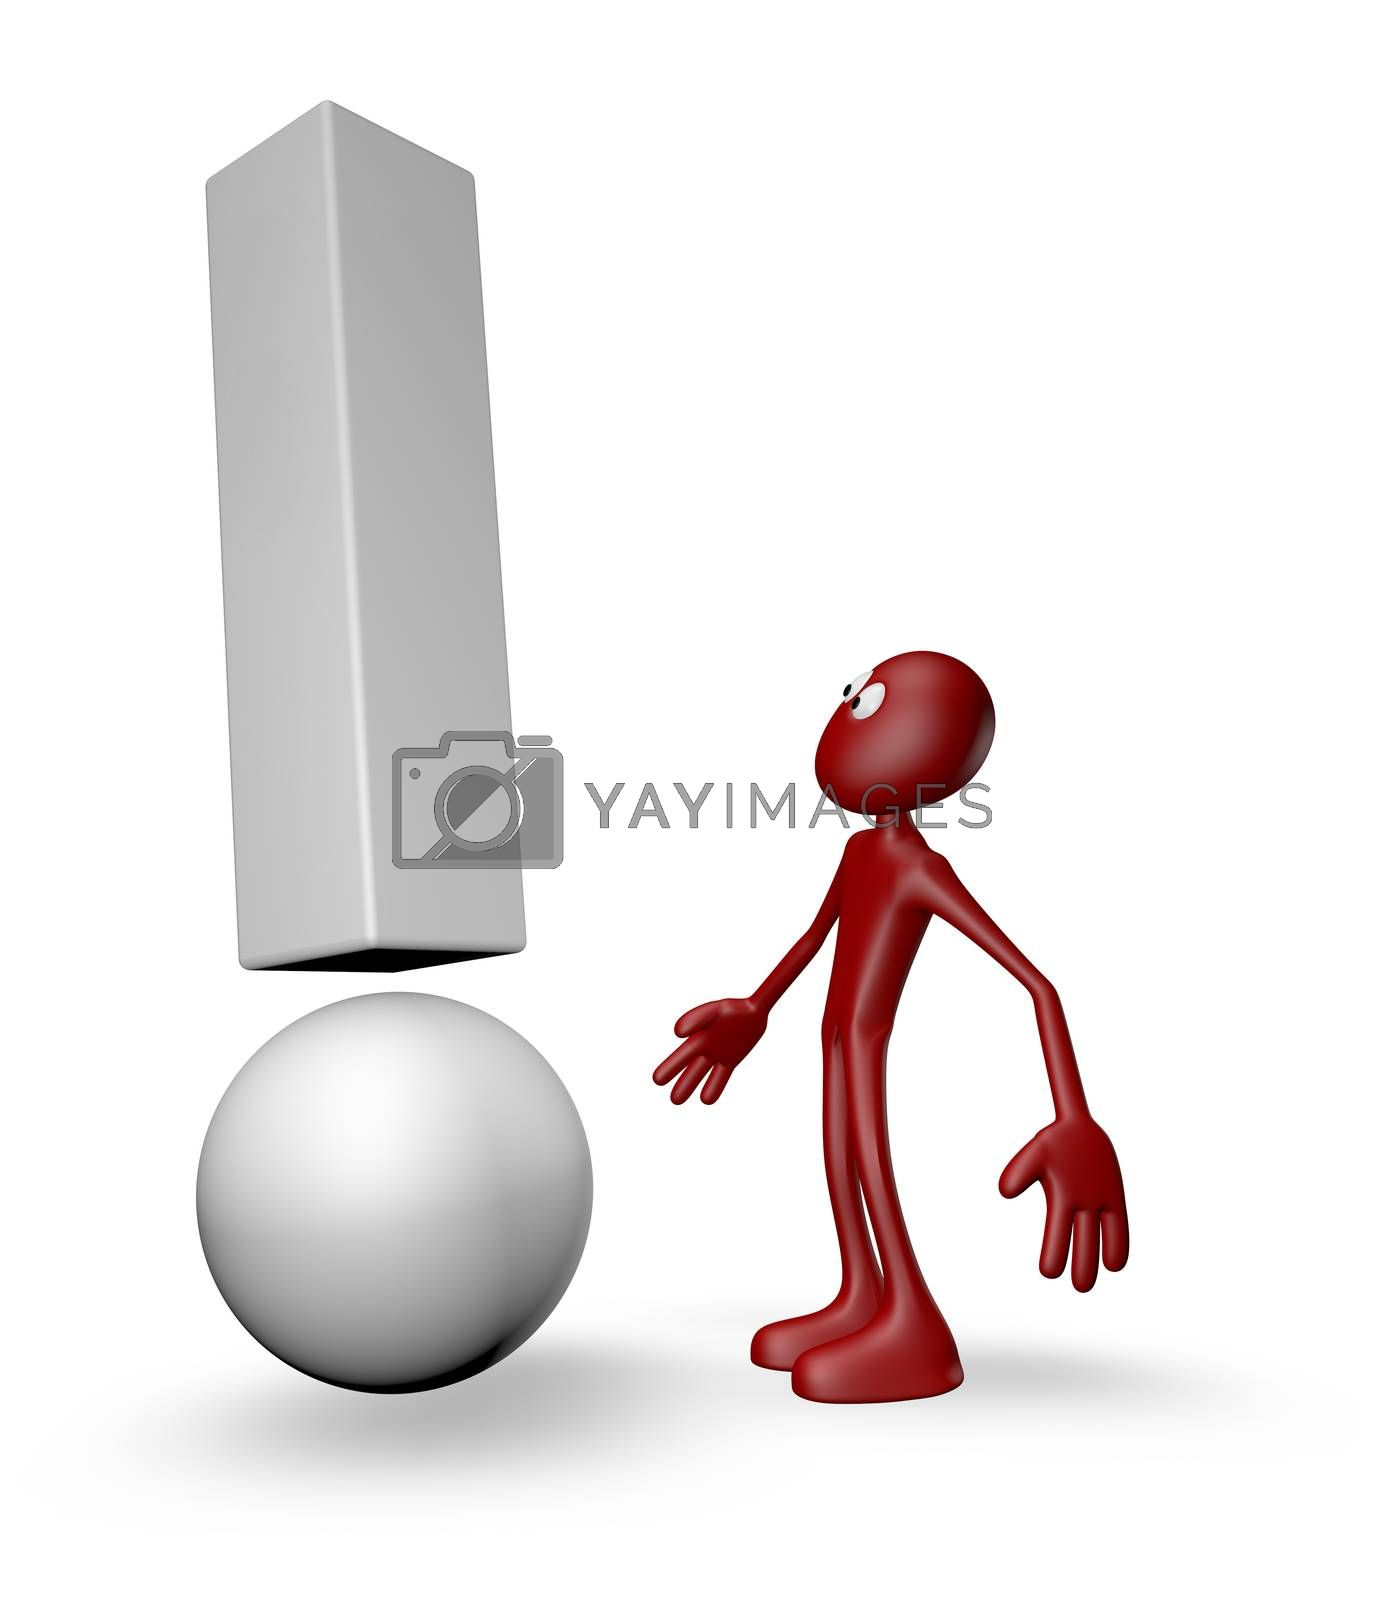 red guy and exclamation mark - 3d illustration